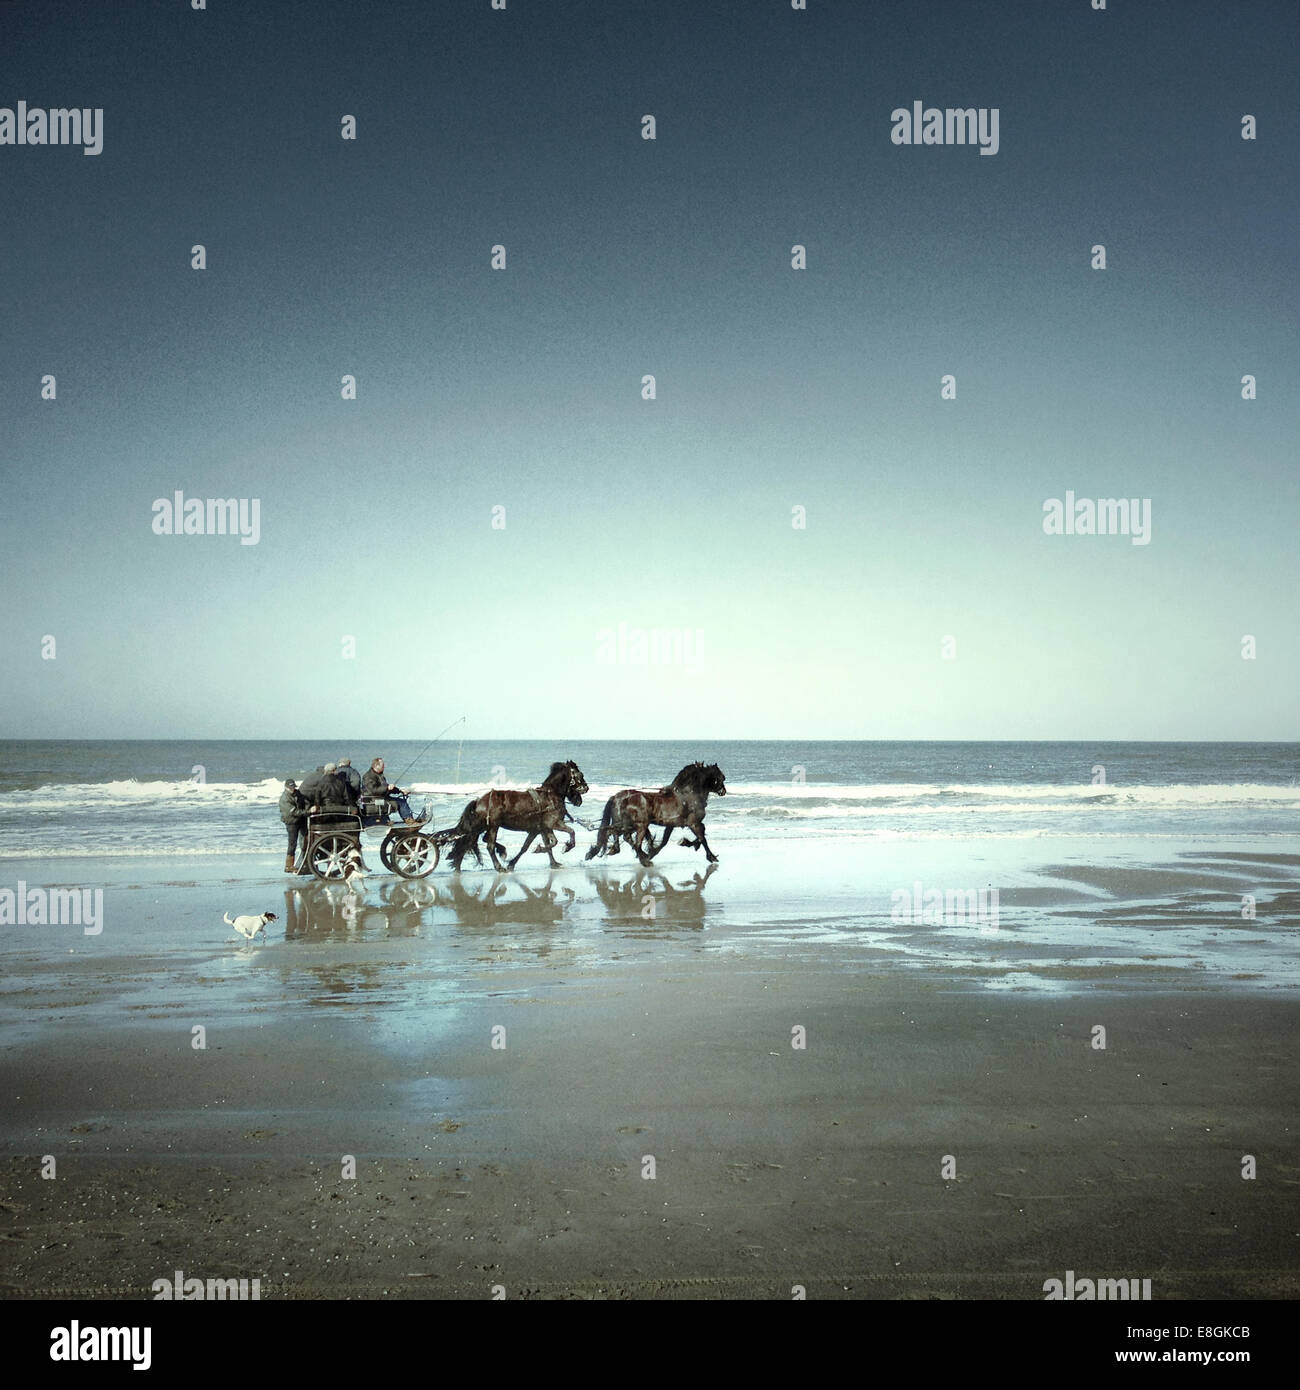 Horses and cart on beach - Stock Image